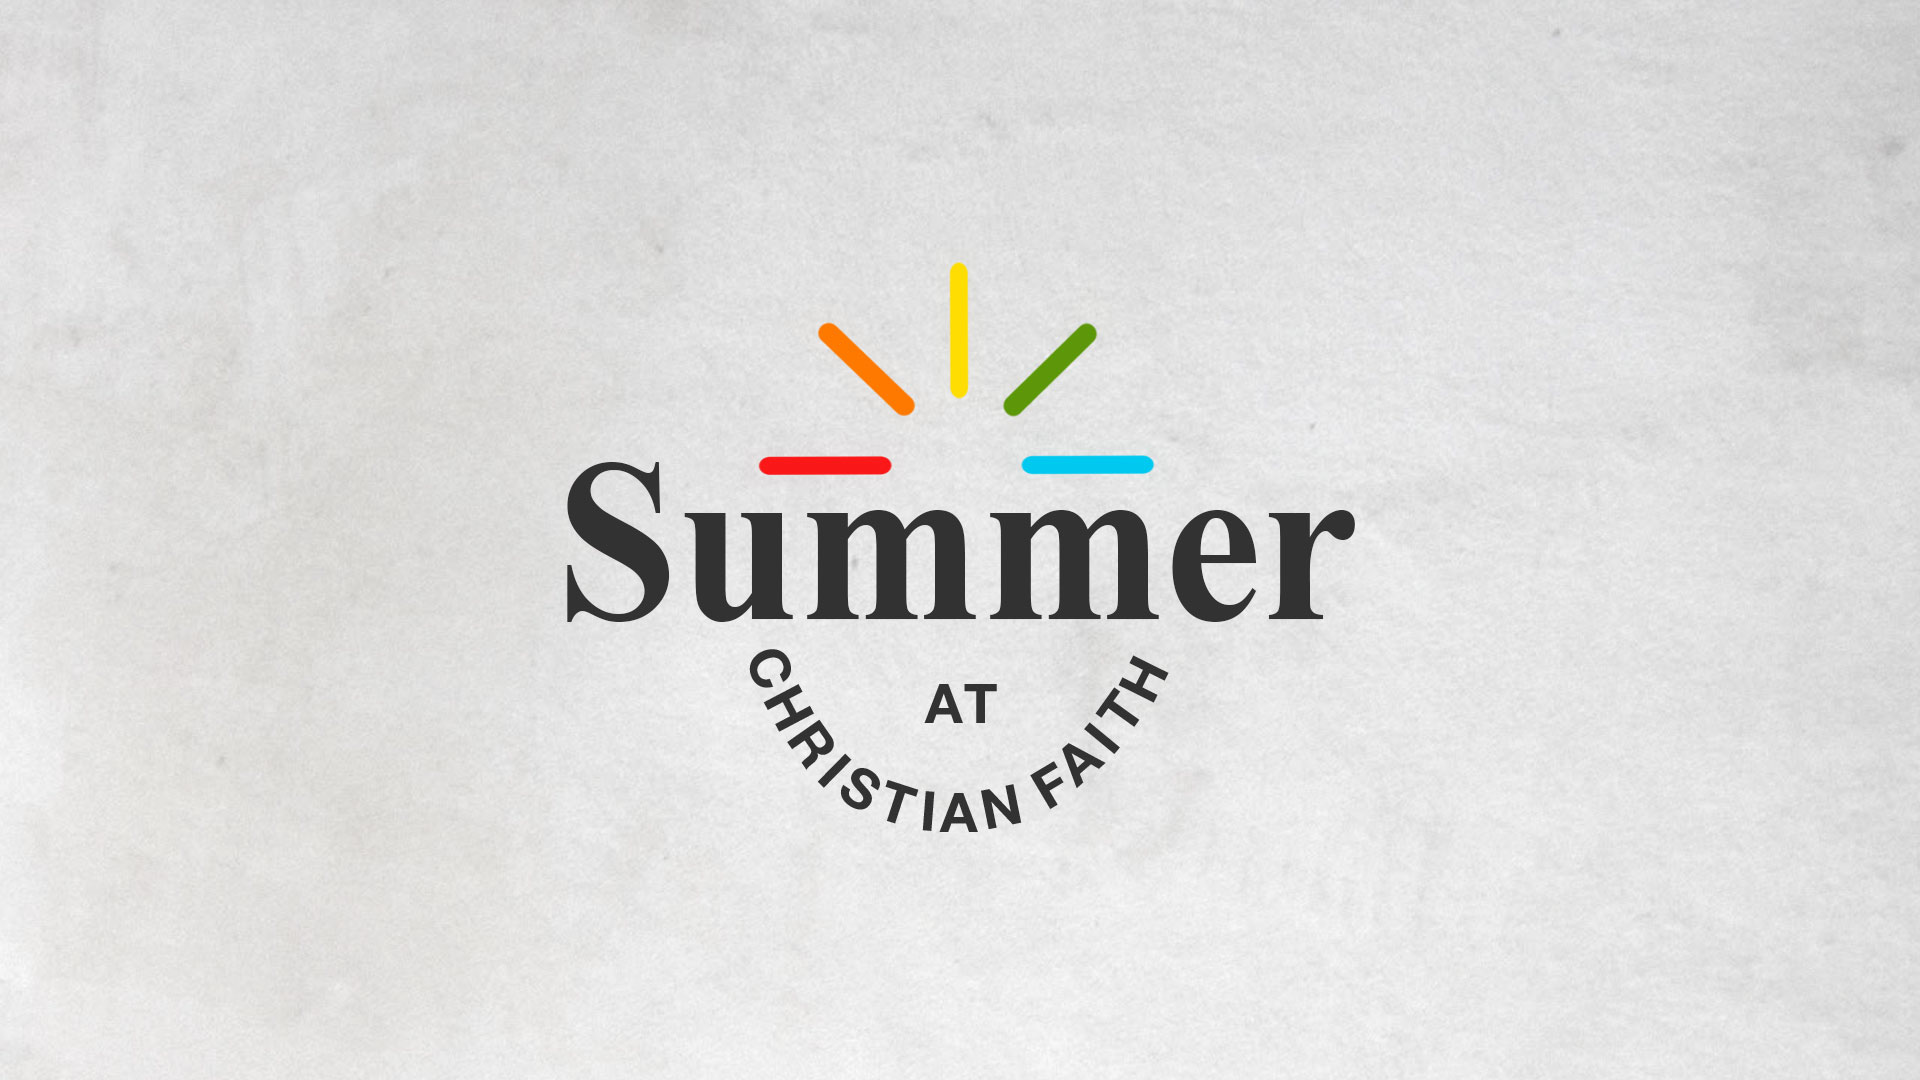 Summer at Christian Faith